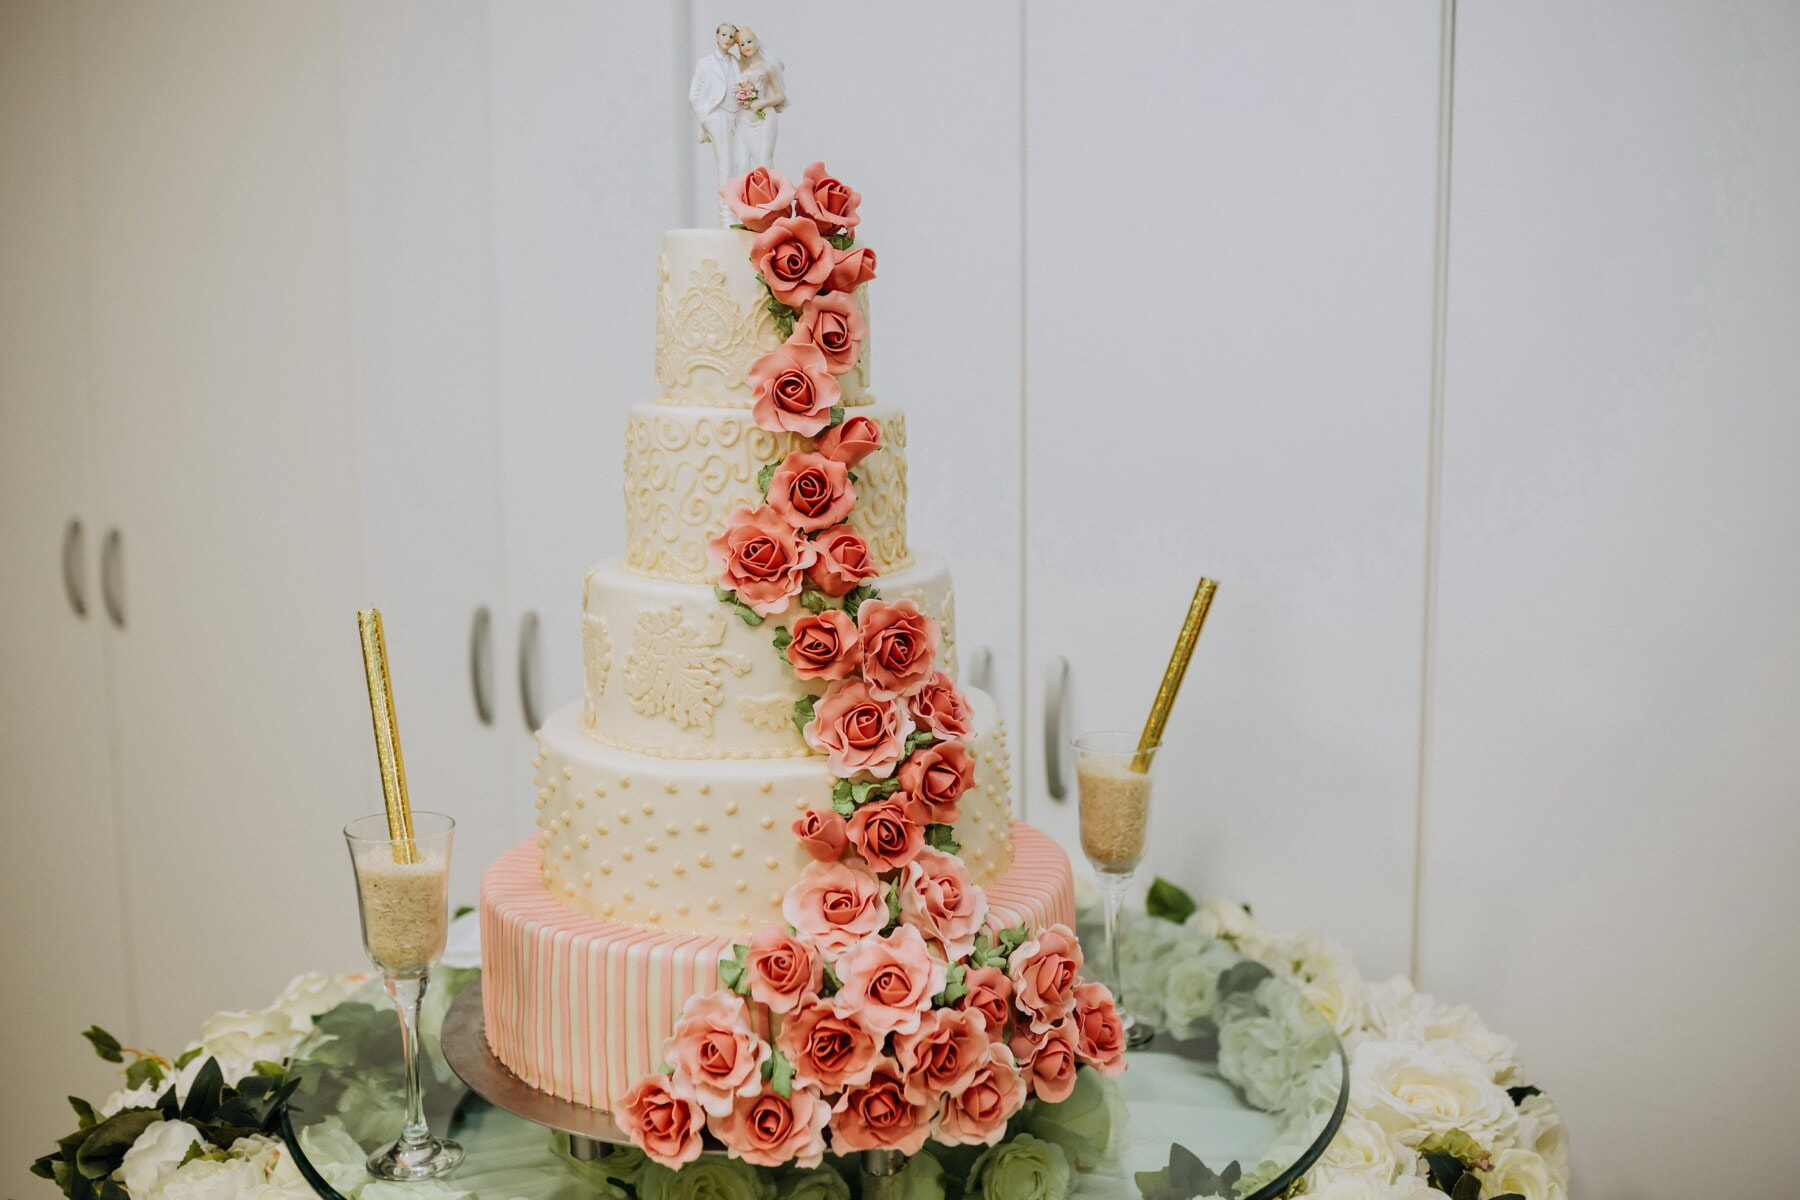 wedding cake, spectacular, decoration, cake, wedding, chocolate, candle, cream, celebration, food